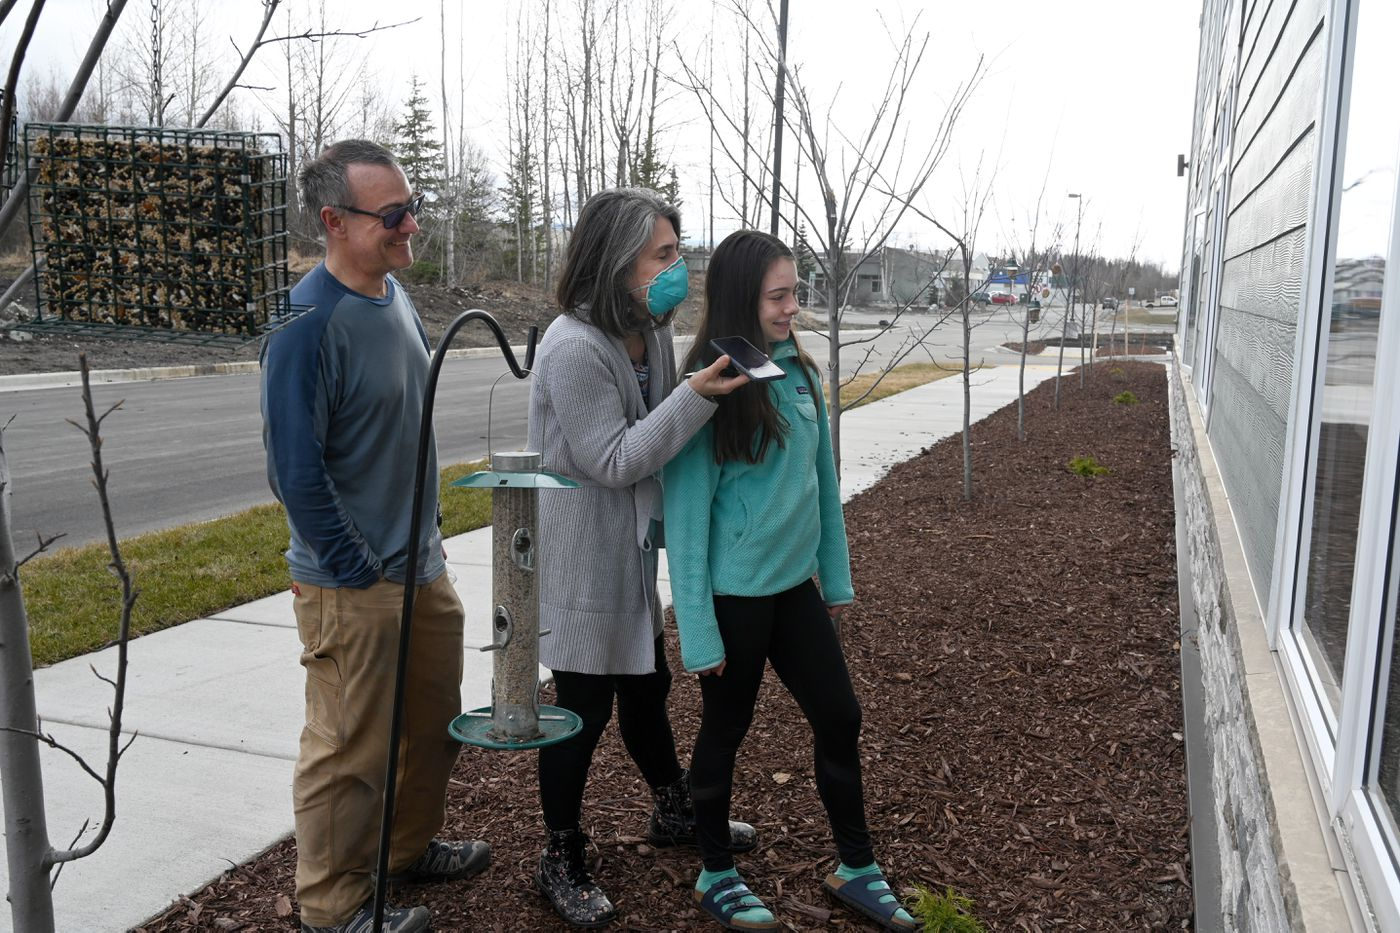 Robb Reeg, Michelle Hensel and their daughter 14-year-old Kaia talk to Michelle's father, Richard Hensel, through the window at Aspen Creek Senior Living, Wednesday, April 22, 2020. (Anne Raup / ADN)